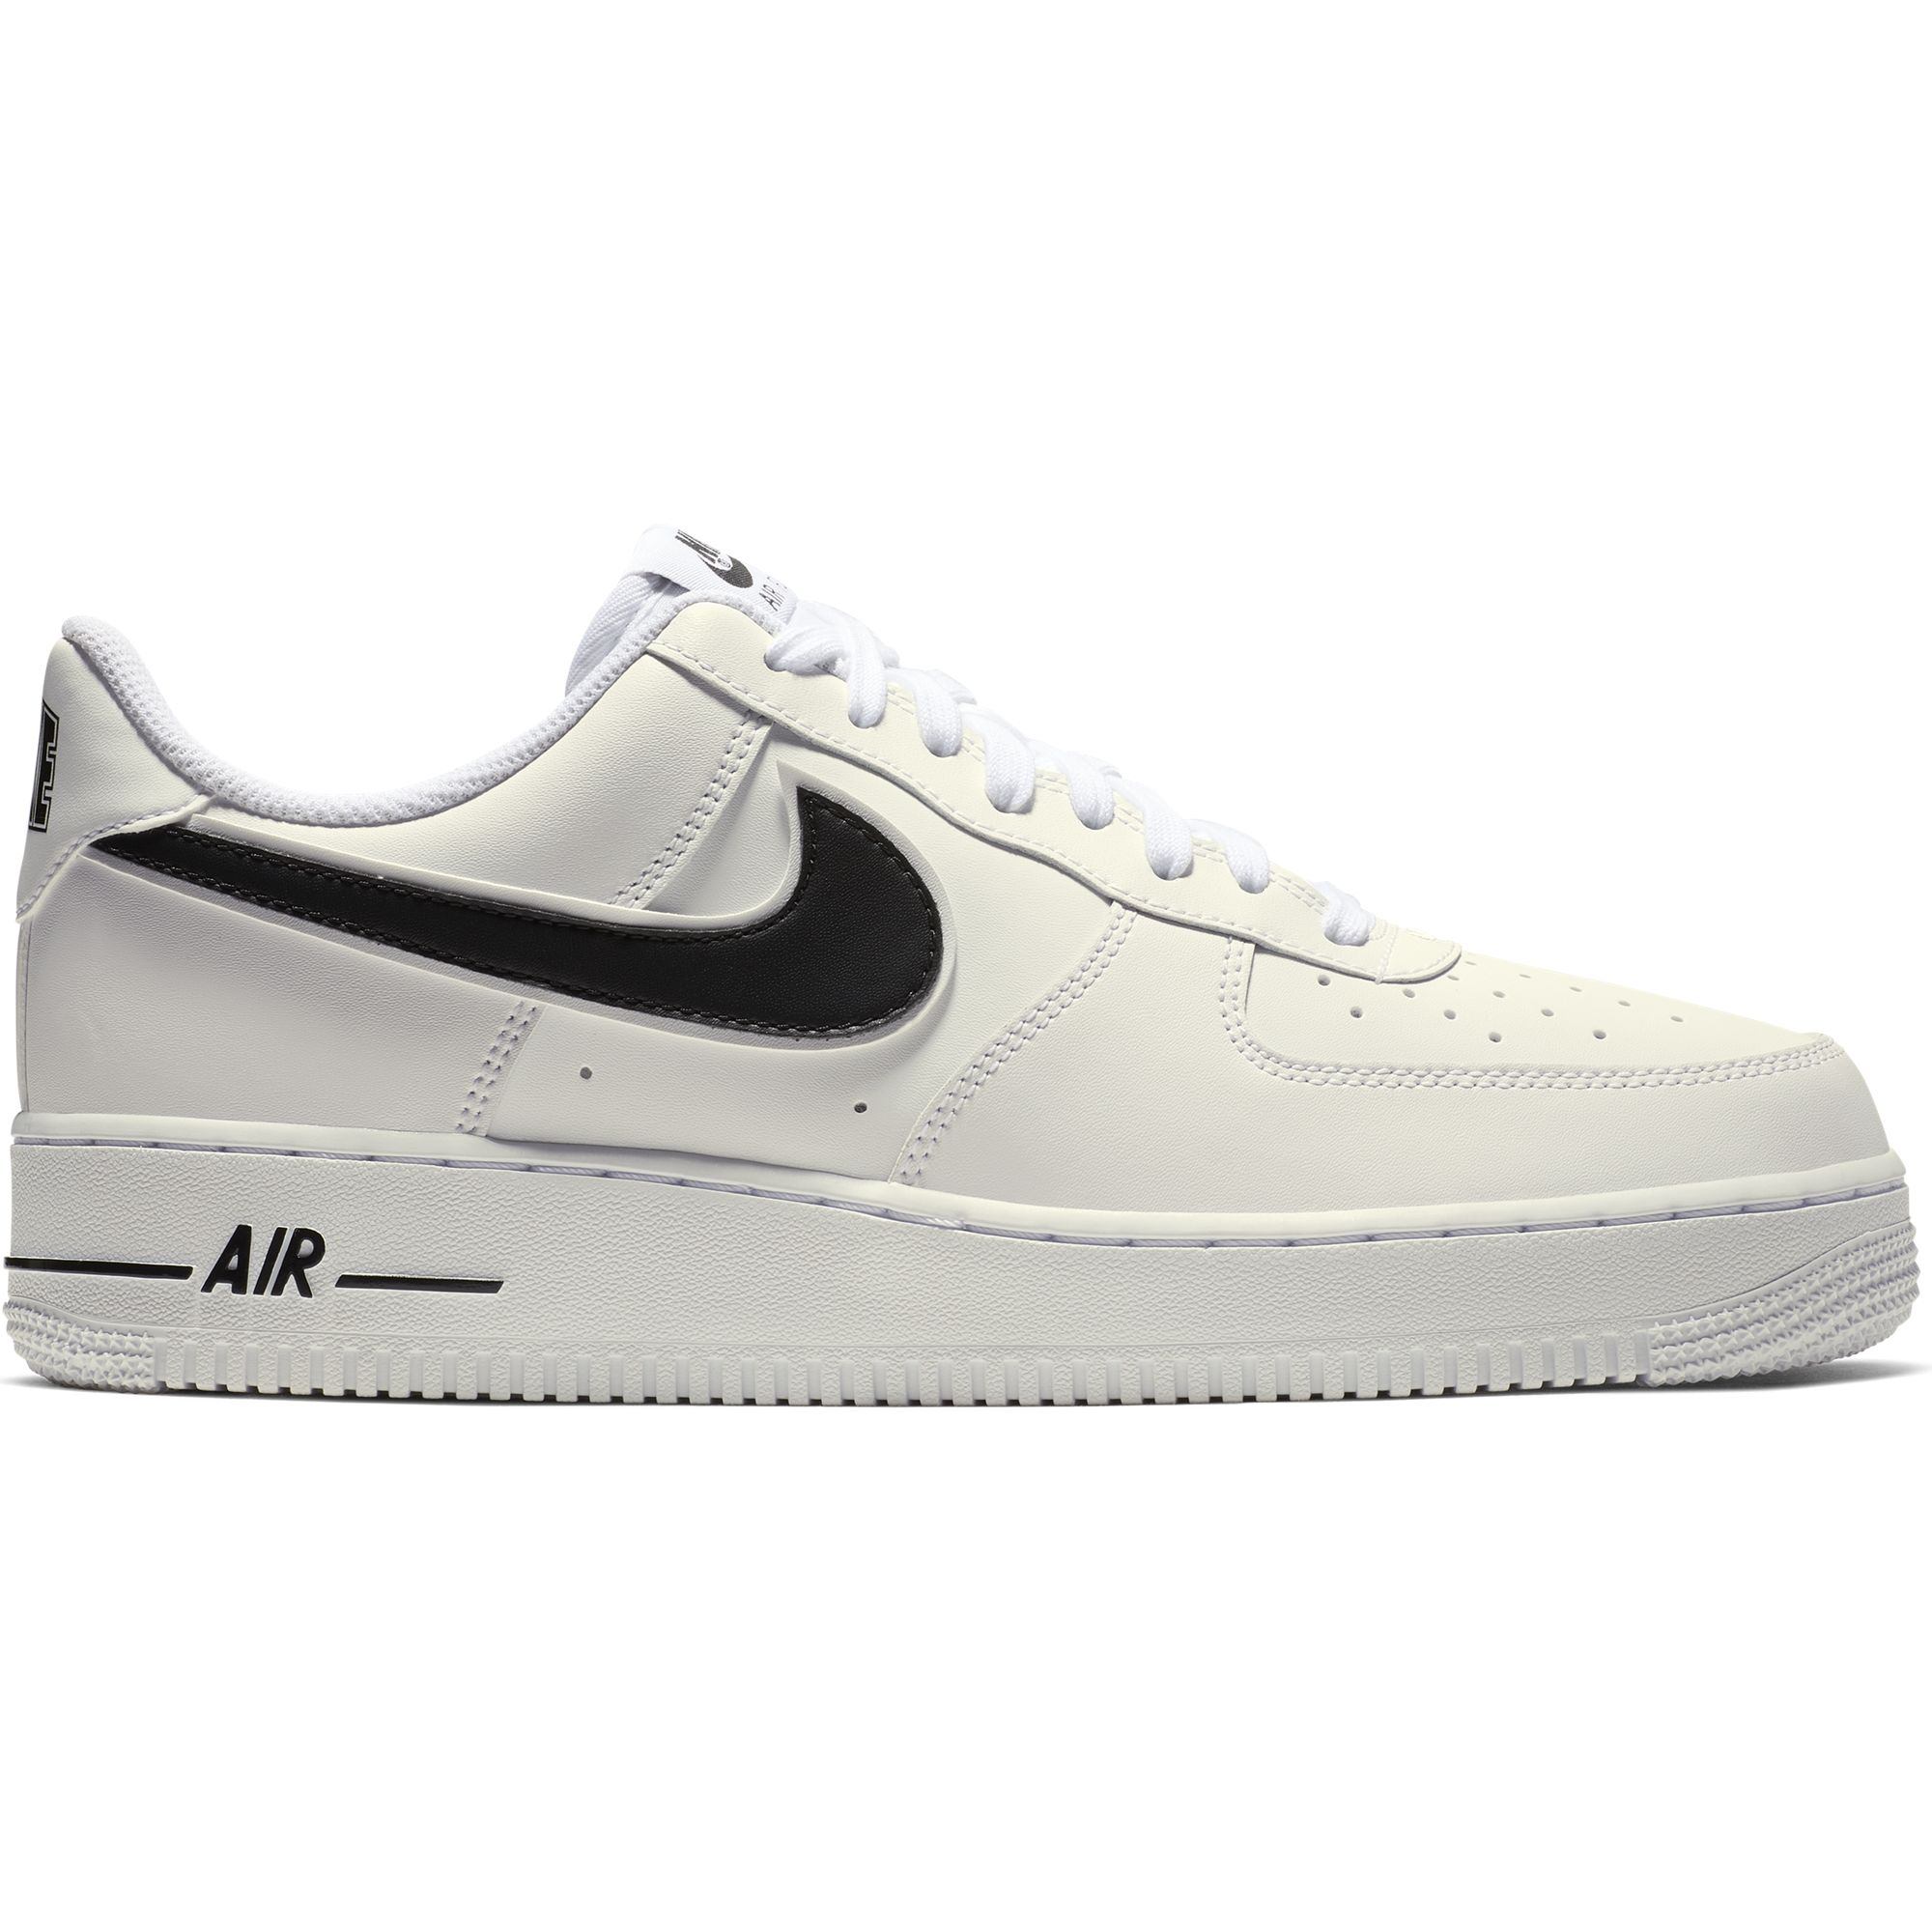 6412a840cbc1 Кроссовки Nike Air Force 1 07 3 White Black   AO2423-101